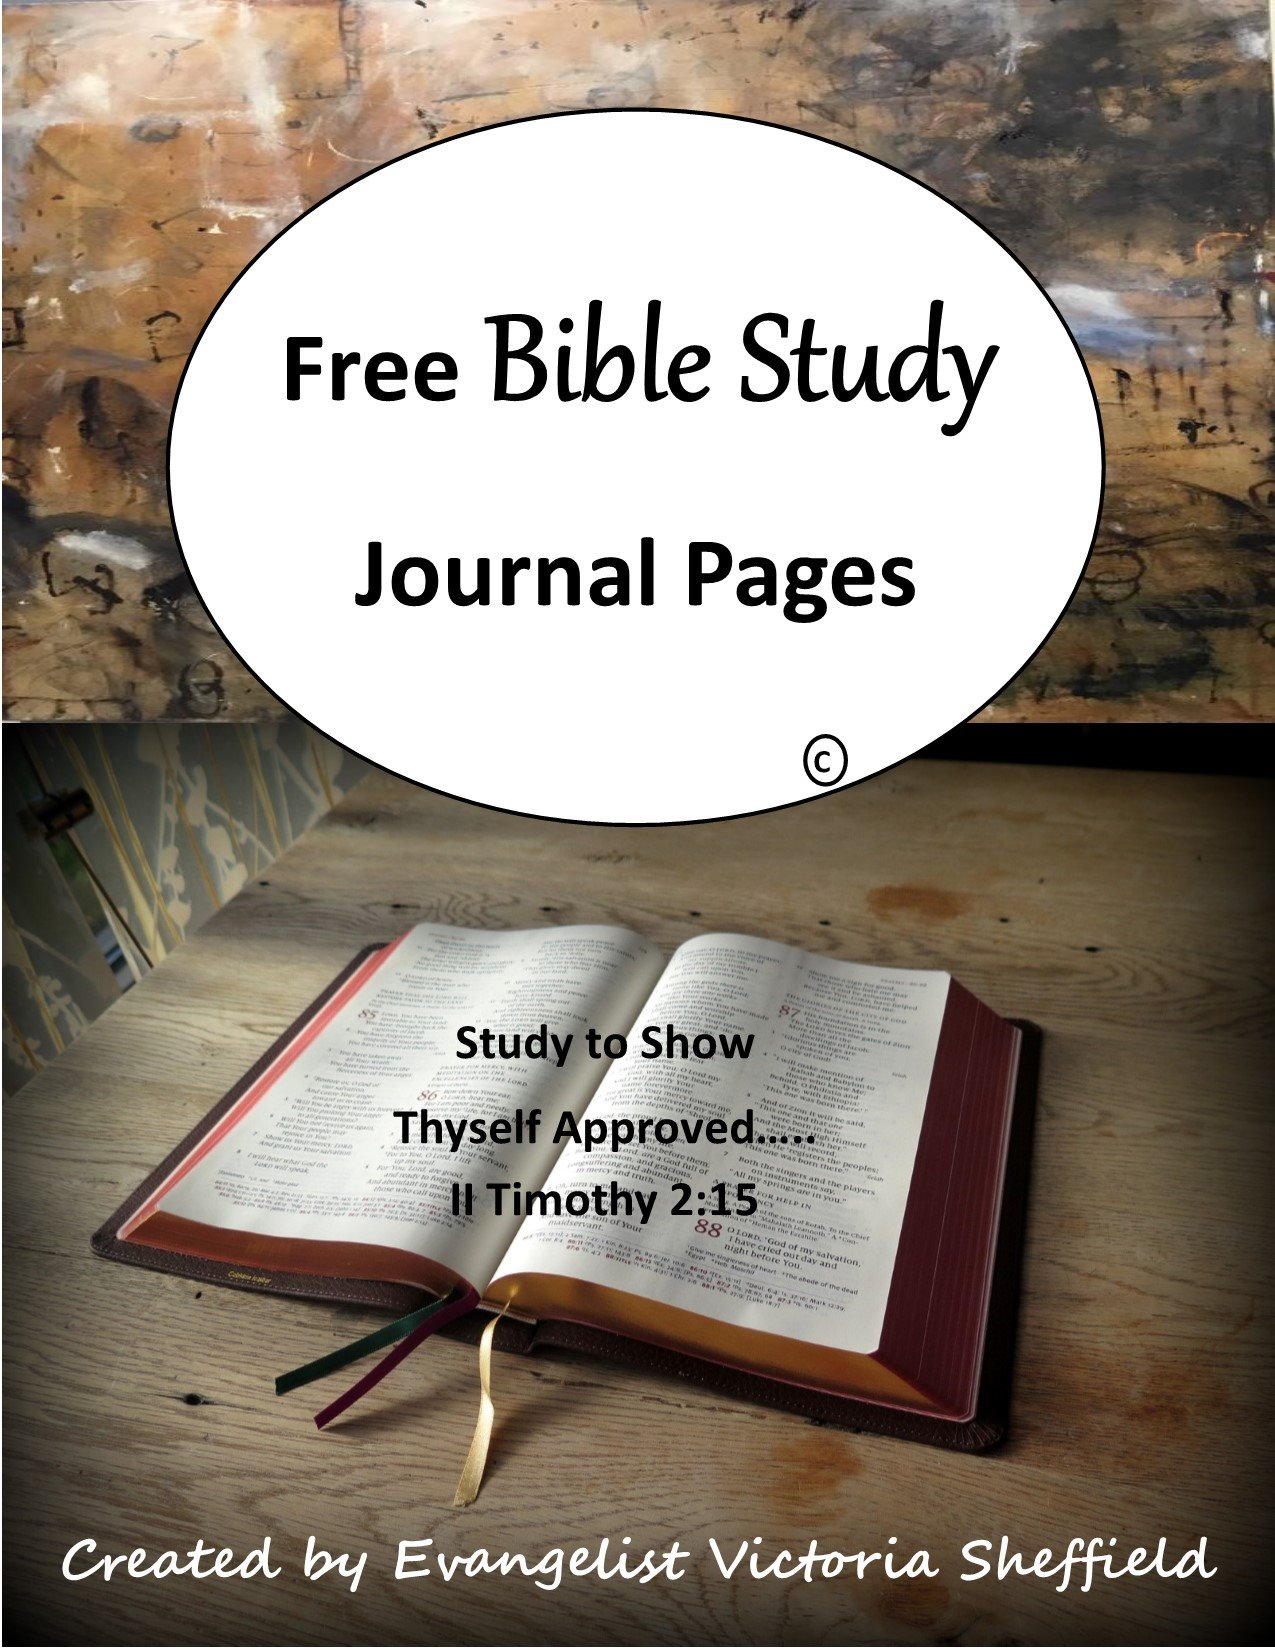 Free Bible Study Journal